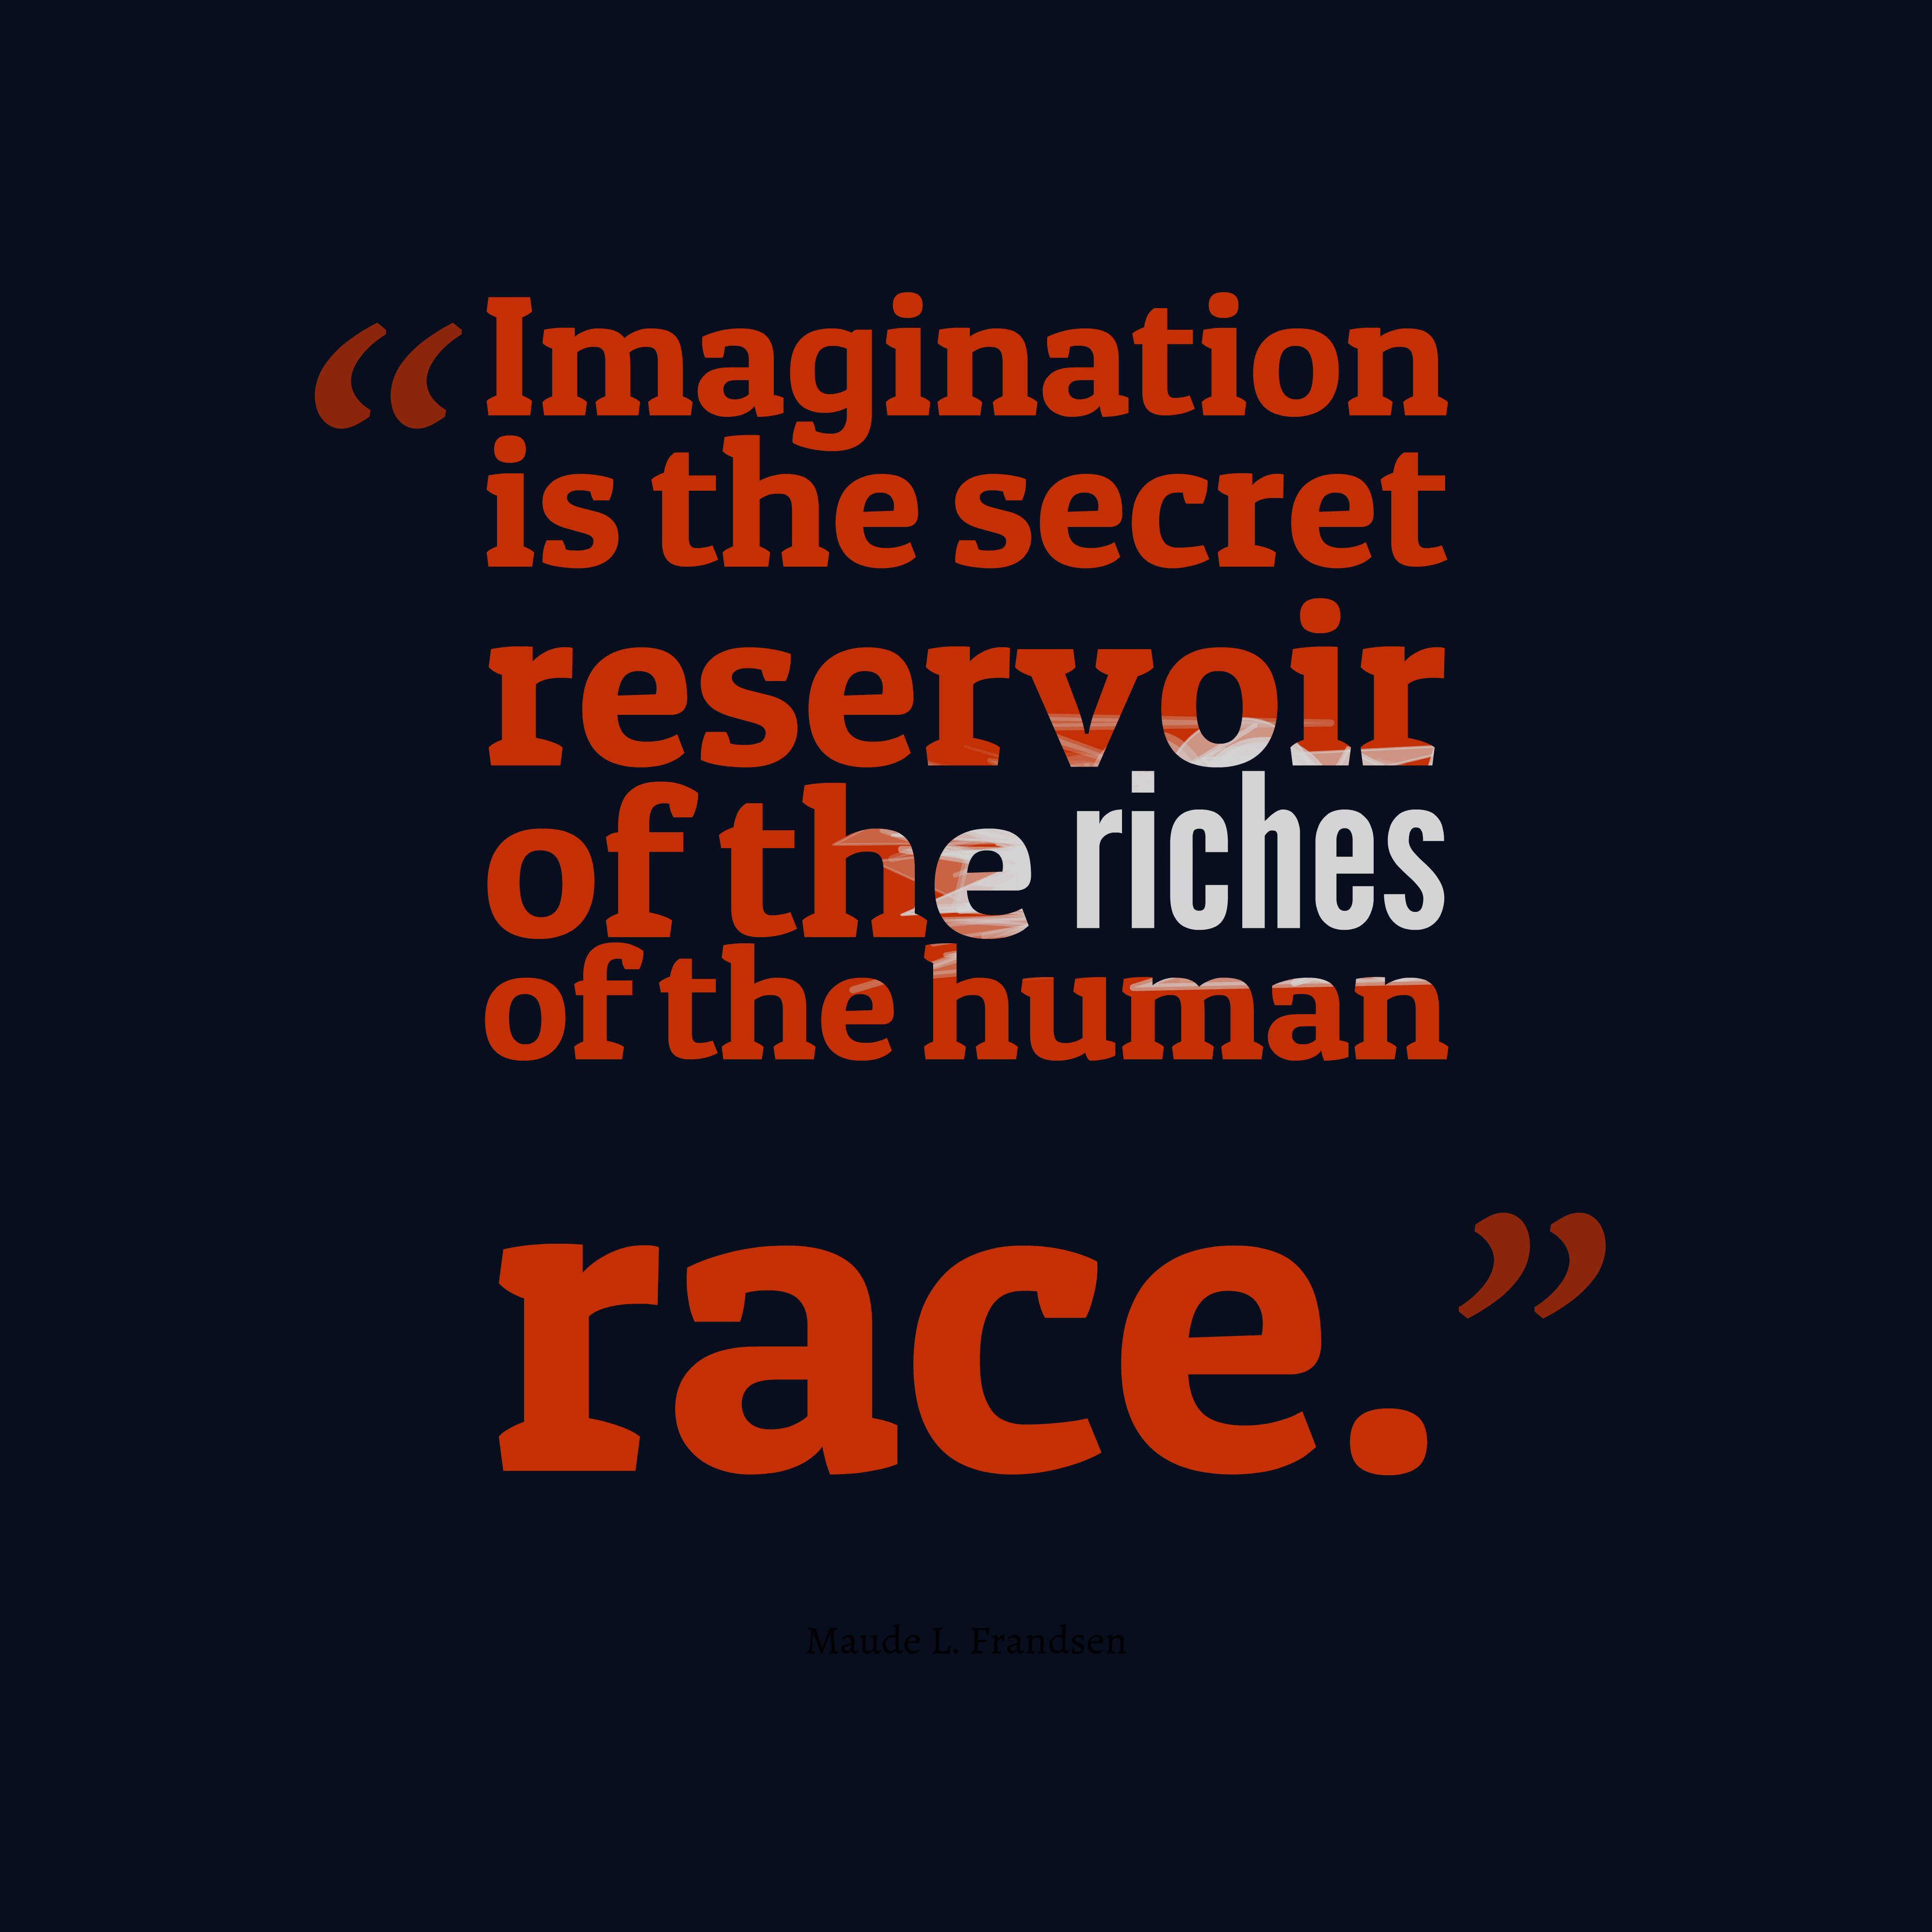 Quotes image of Imagination is the secret reservoir of the riches of the human race.